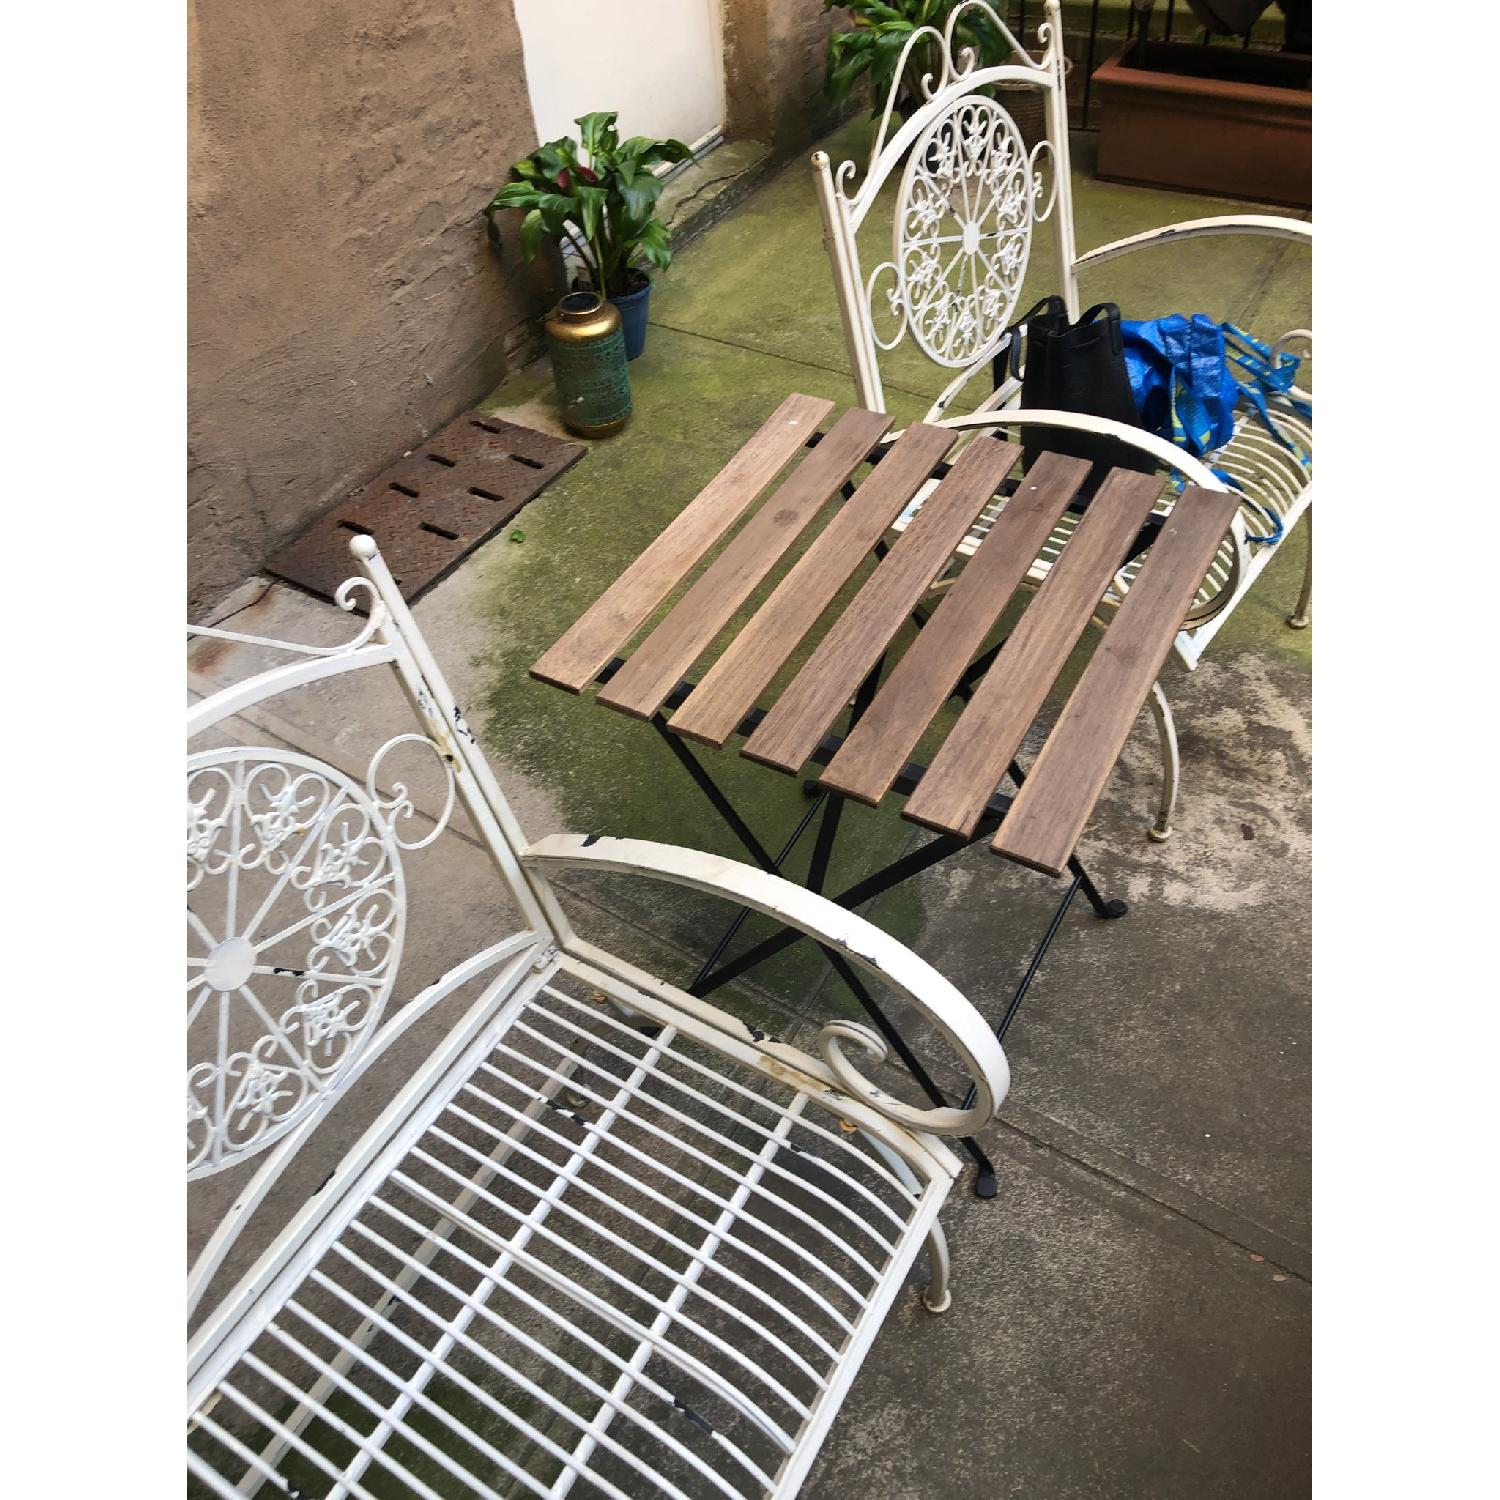 Safavieh Outdoor Rustic Antique White Iron Set - image-4